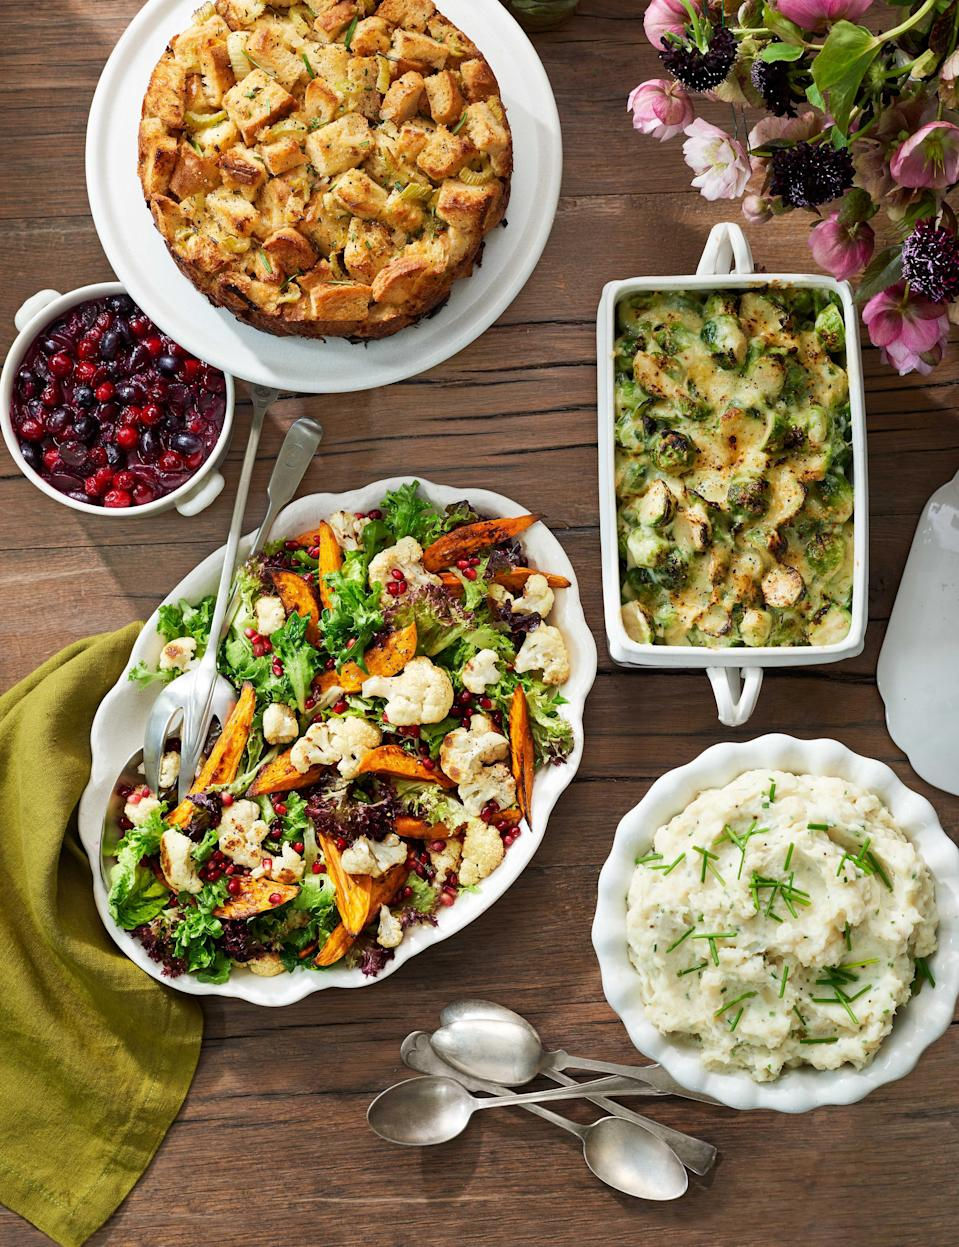 """<p>Turkey and ham may take center stage on the <a href=""""https://www.countryliving.com/food-drinks/g637/thanksgiving-menus/"""" rel=""""nofollow noopener"""" target=""""_blank"""" data-ylk=""""slk:Thanksgiving menu"""" class=""""link rapid-noclick-resp"""">Thanksgiving menu</a>, but don't kid yourself: This holiday is all about the vegetables. Fall is harvest season, when more <a href=""""https://www.countryliving.com/food-drinks/g33668350/fall-fruits-vegetables/"""" rel=""""nofollow noopener"""" target=""""_blank"""" data-ylk=""""slk:fresh fruits and veggies"""" class=""""link rapid-noclick-resp"""">fresh fruits and veggies</a> are available than ever, and Thanksgiving is the time to make use of all of it, from creamy potatoes to crunchy greens, from toothsome Brussels sprouts to tender cauliflower and kale. And don't forget <a href=""""https://www.countryliving.com/food-drinks/g3626/fall-salads/"""" rel=""""nofollow noopener"""" target=""""_blank"""" data-ylk=""""slk:the salads"""" class=""""link rapid-noclick-resp"""">the salads</a>!</p>"""